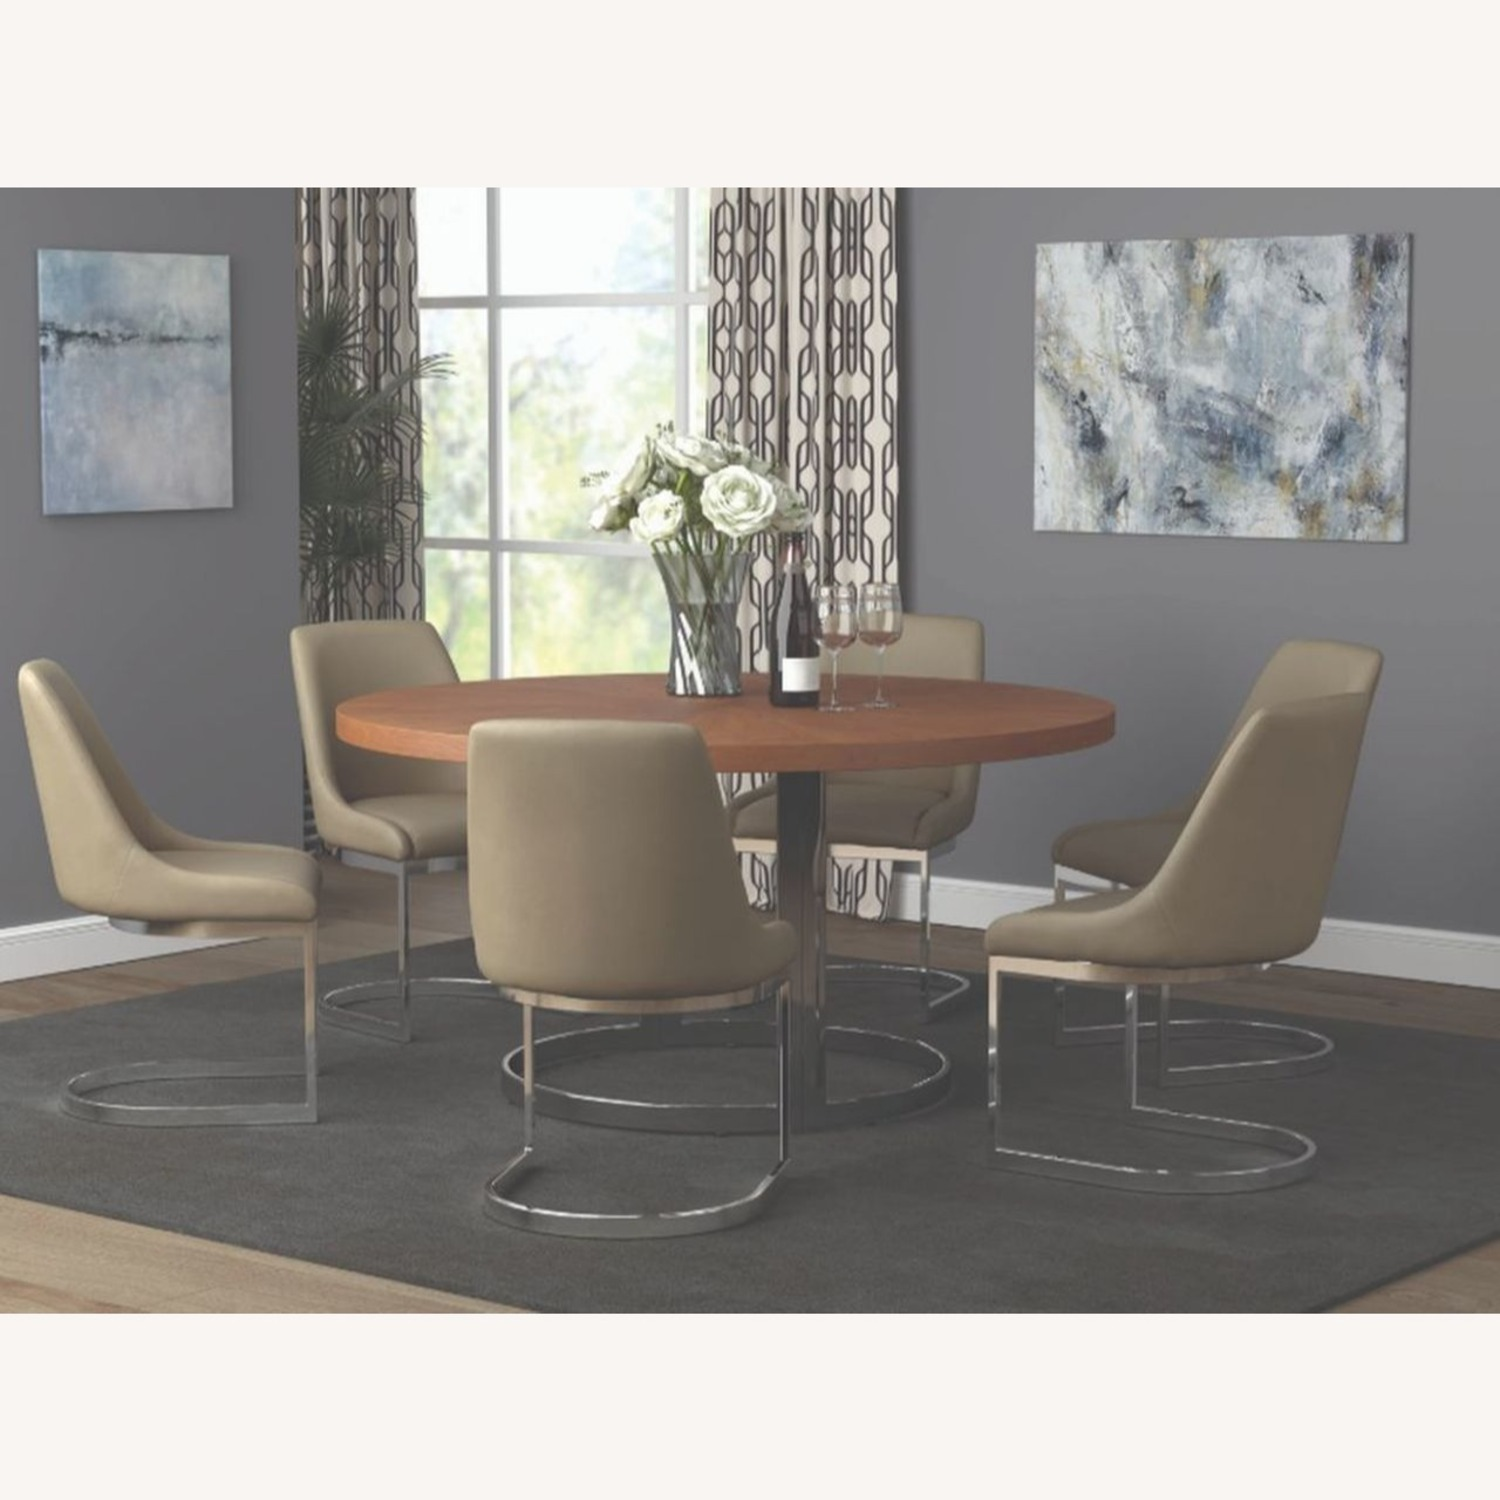 Modern Dining Table In Natural Cherry Finish - image-2